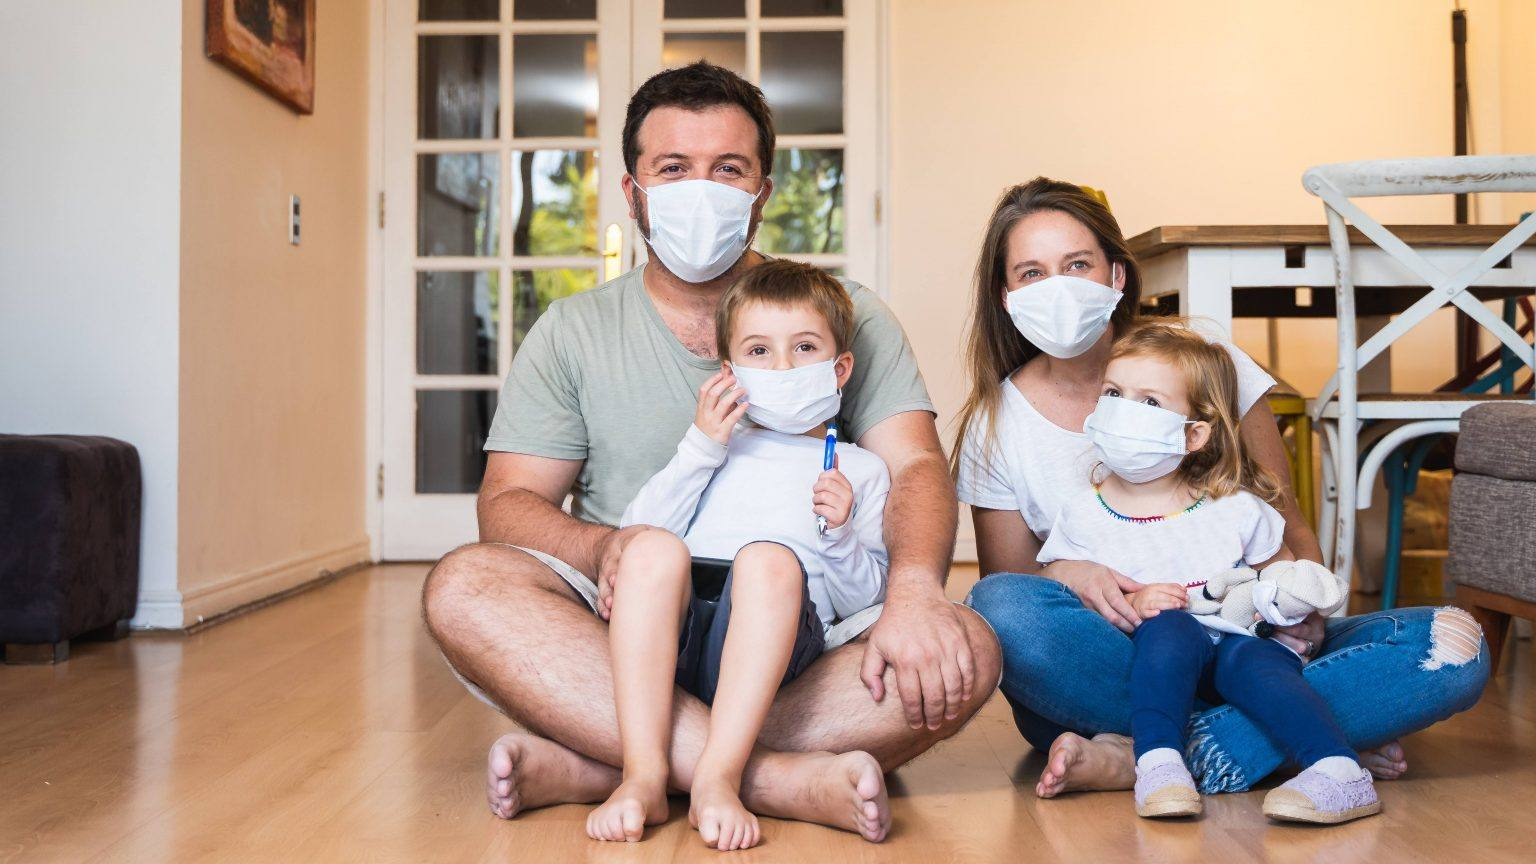 a-white-man-and-woman-with-two-white-children-sitting-on-their-laps-on-the-floor-smiling-and-wearing-face-masks-16x9-1-1536x864